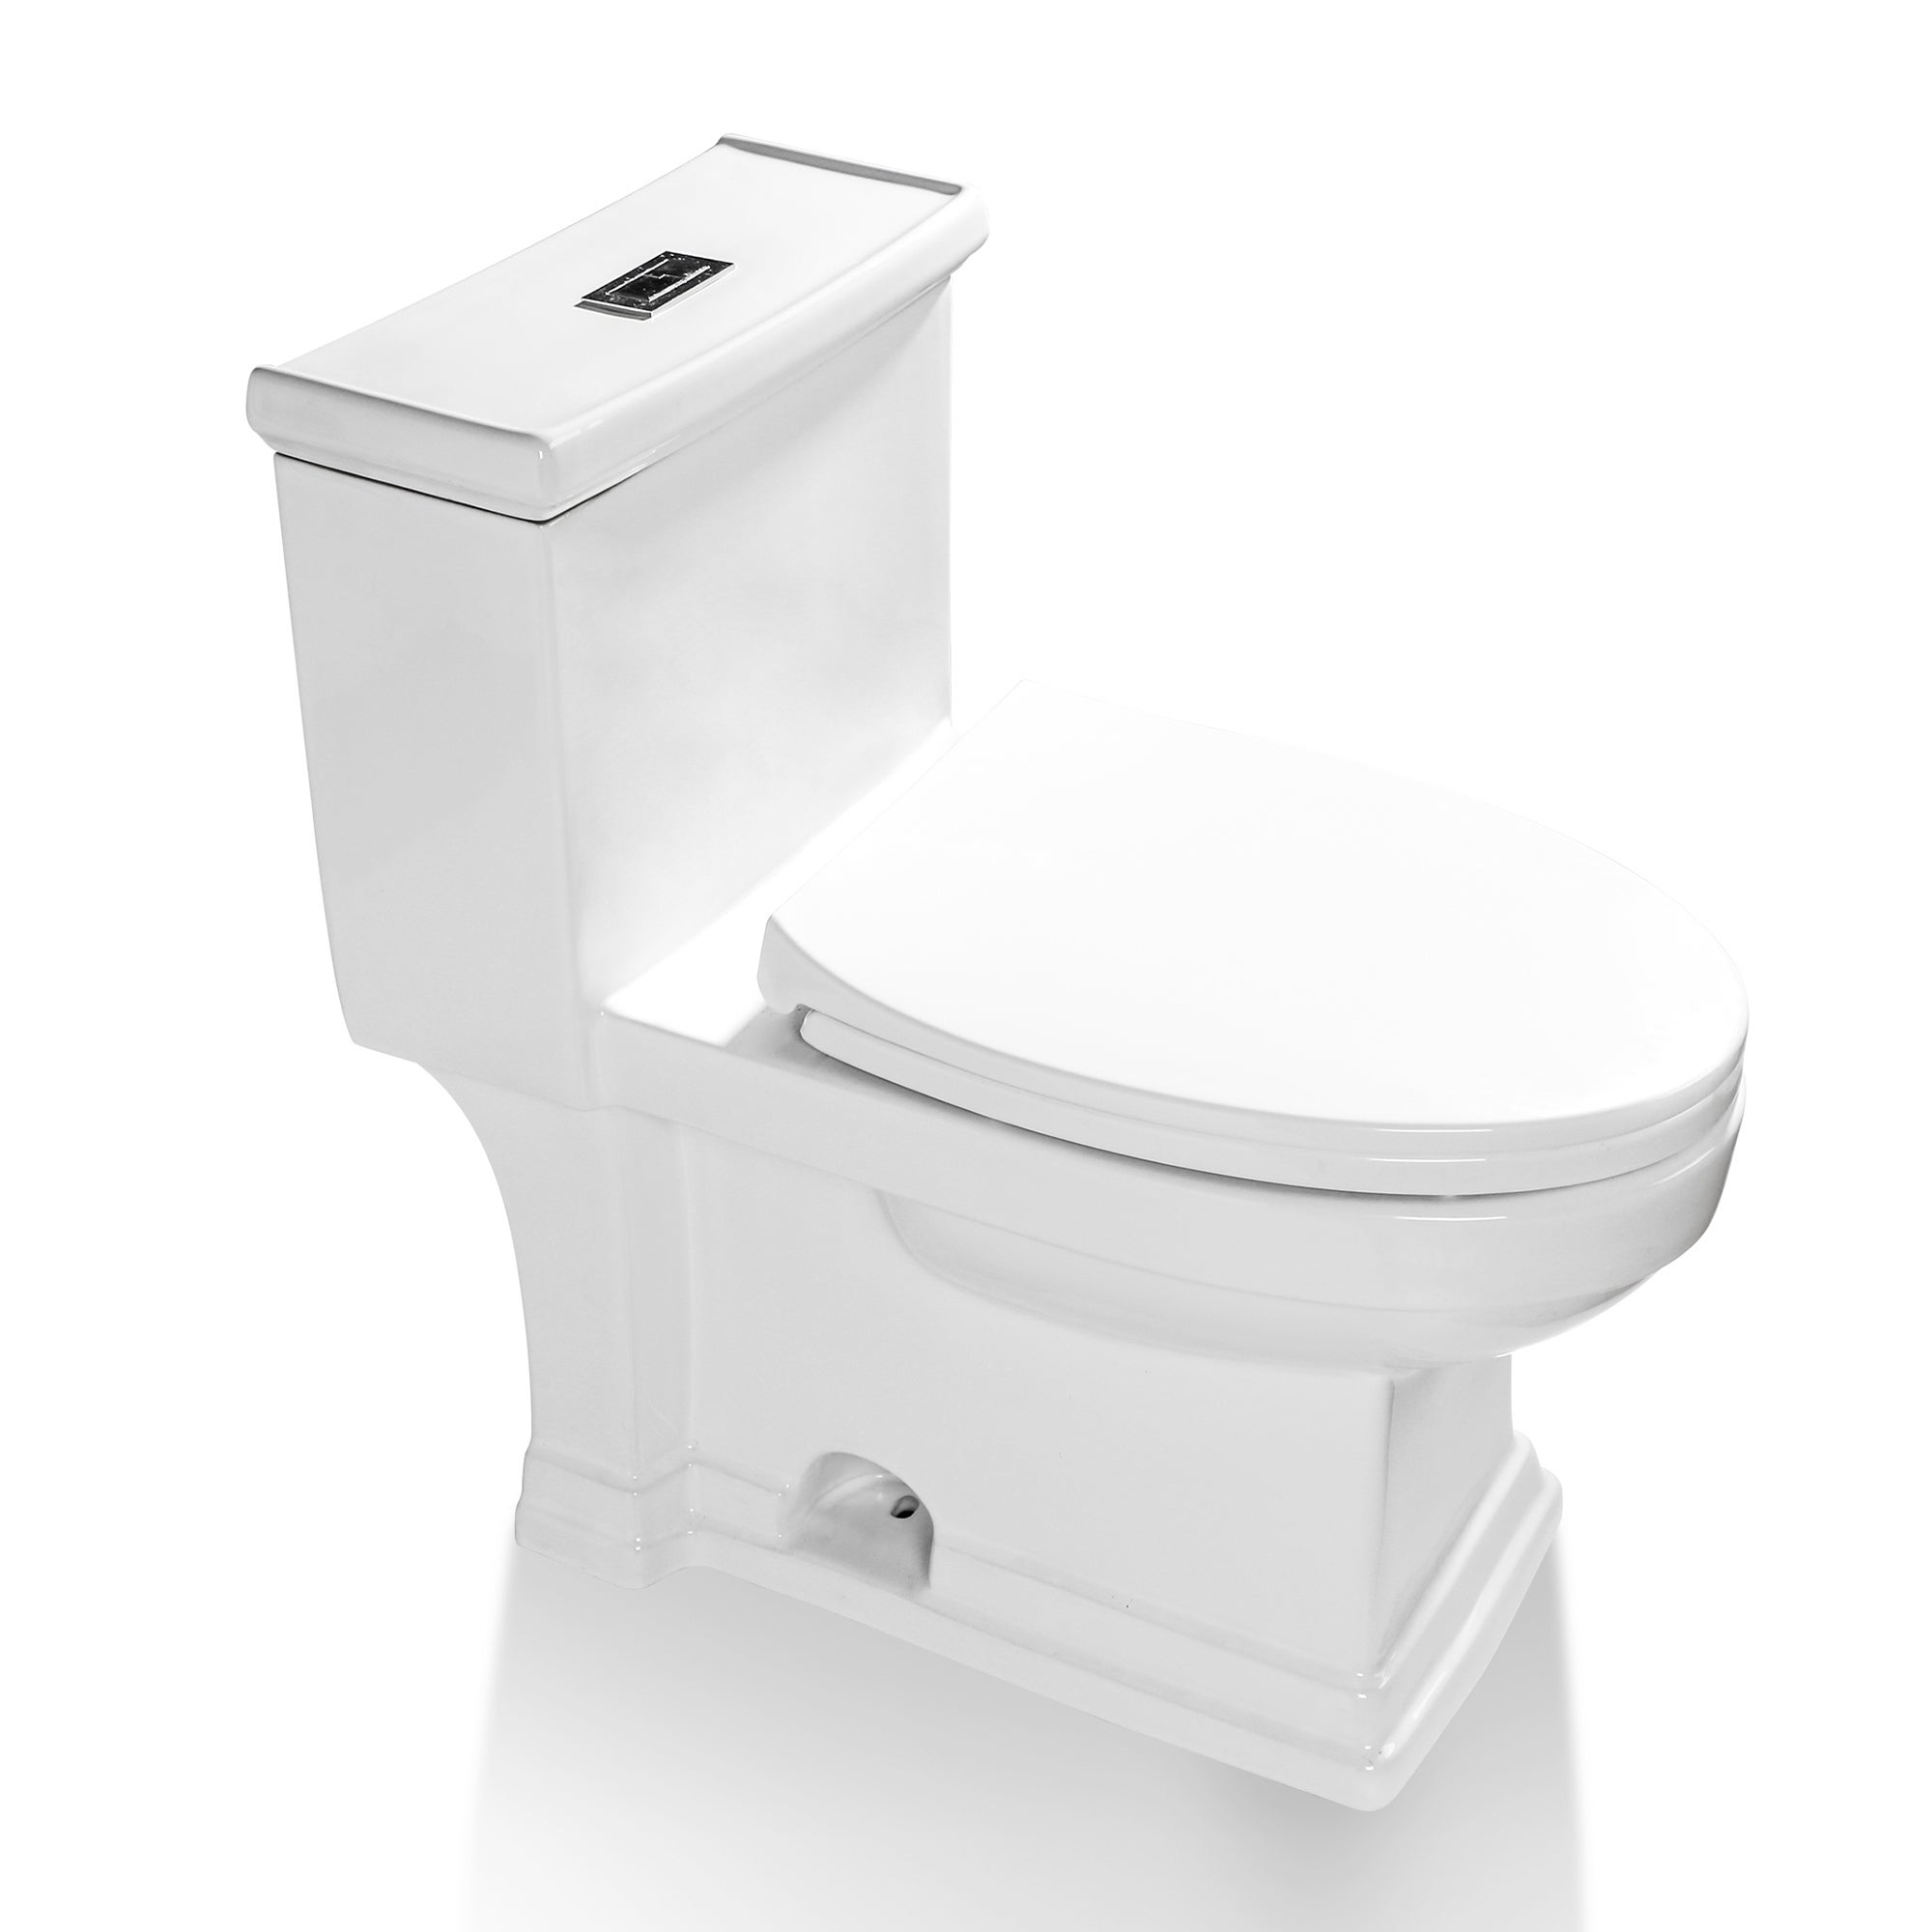 1 28 Gpf Water Efficient Elongated One Piece Toilet Seat Included On Sale Overstock 32523420